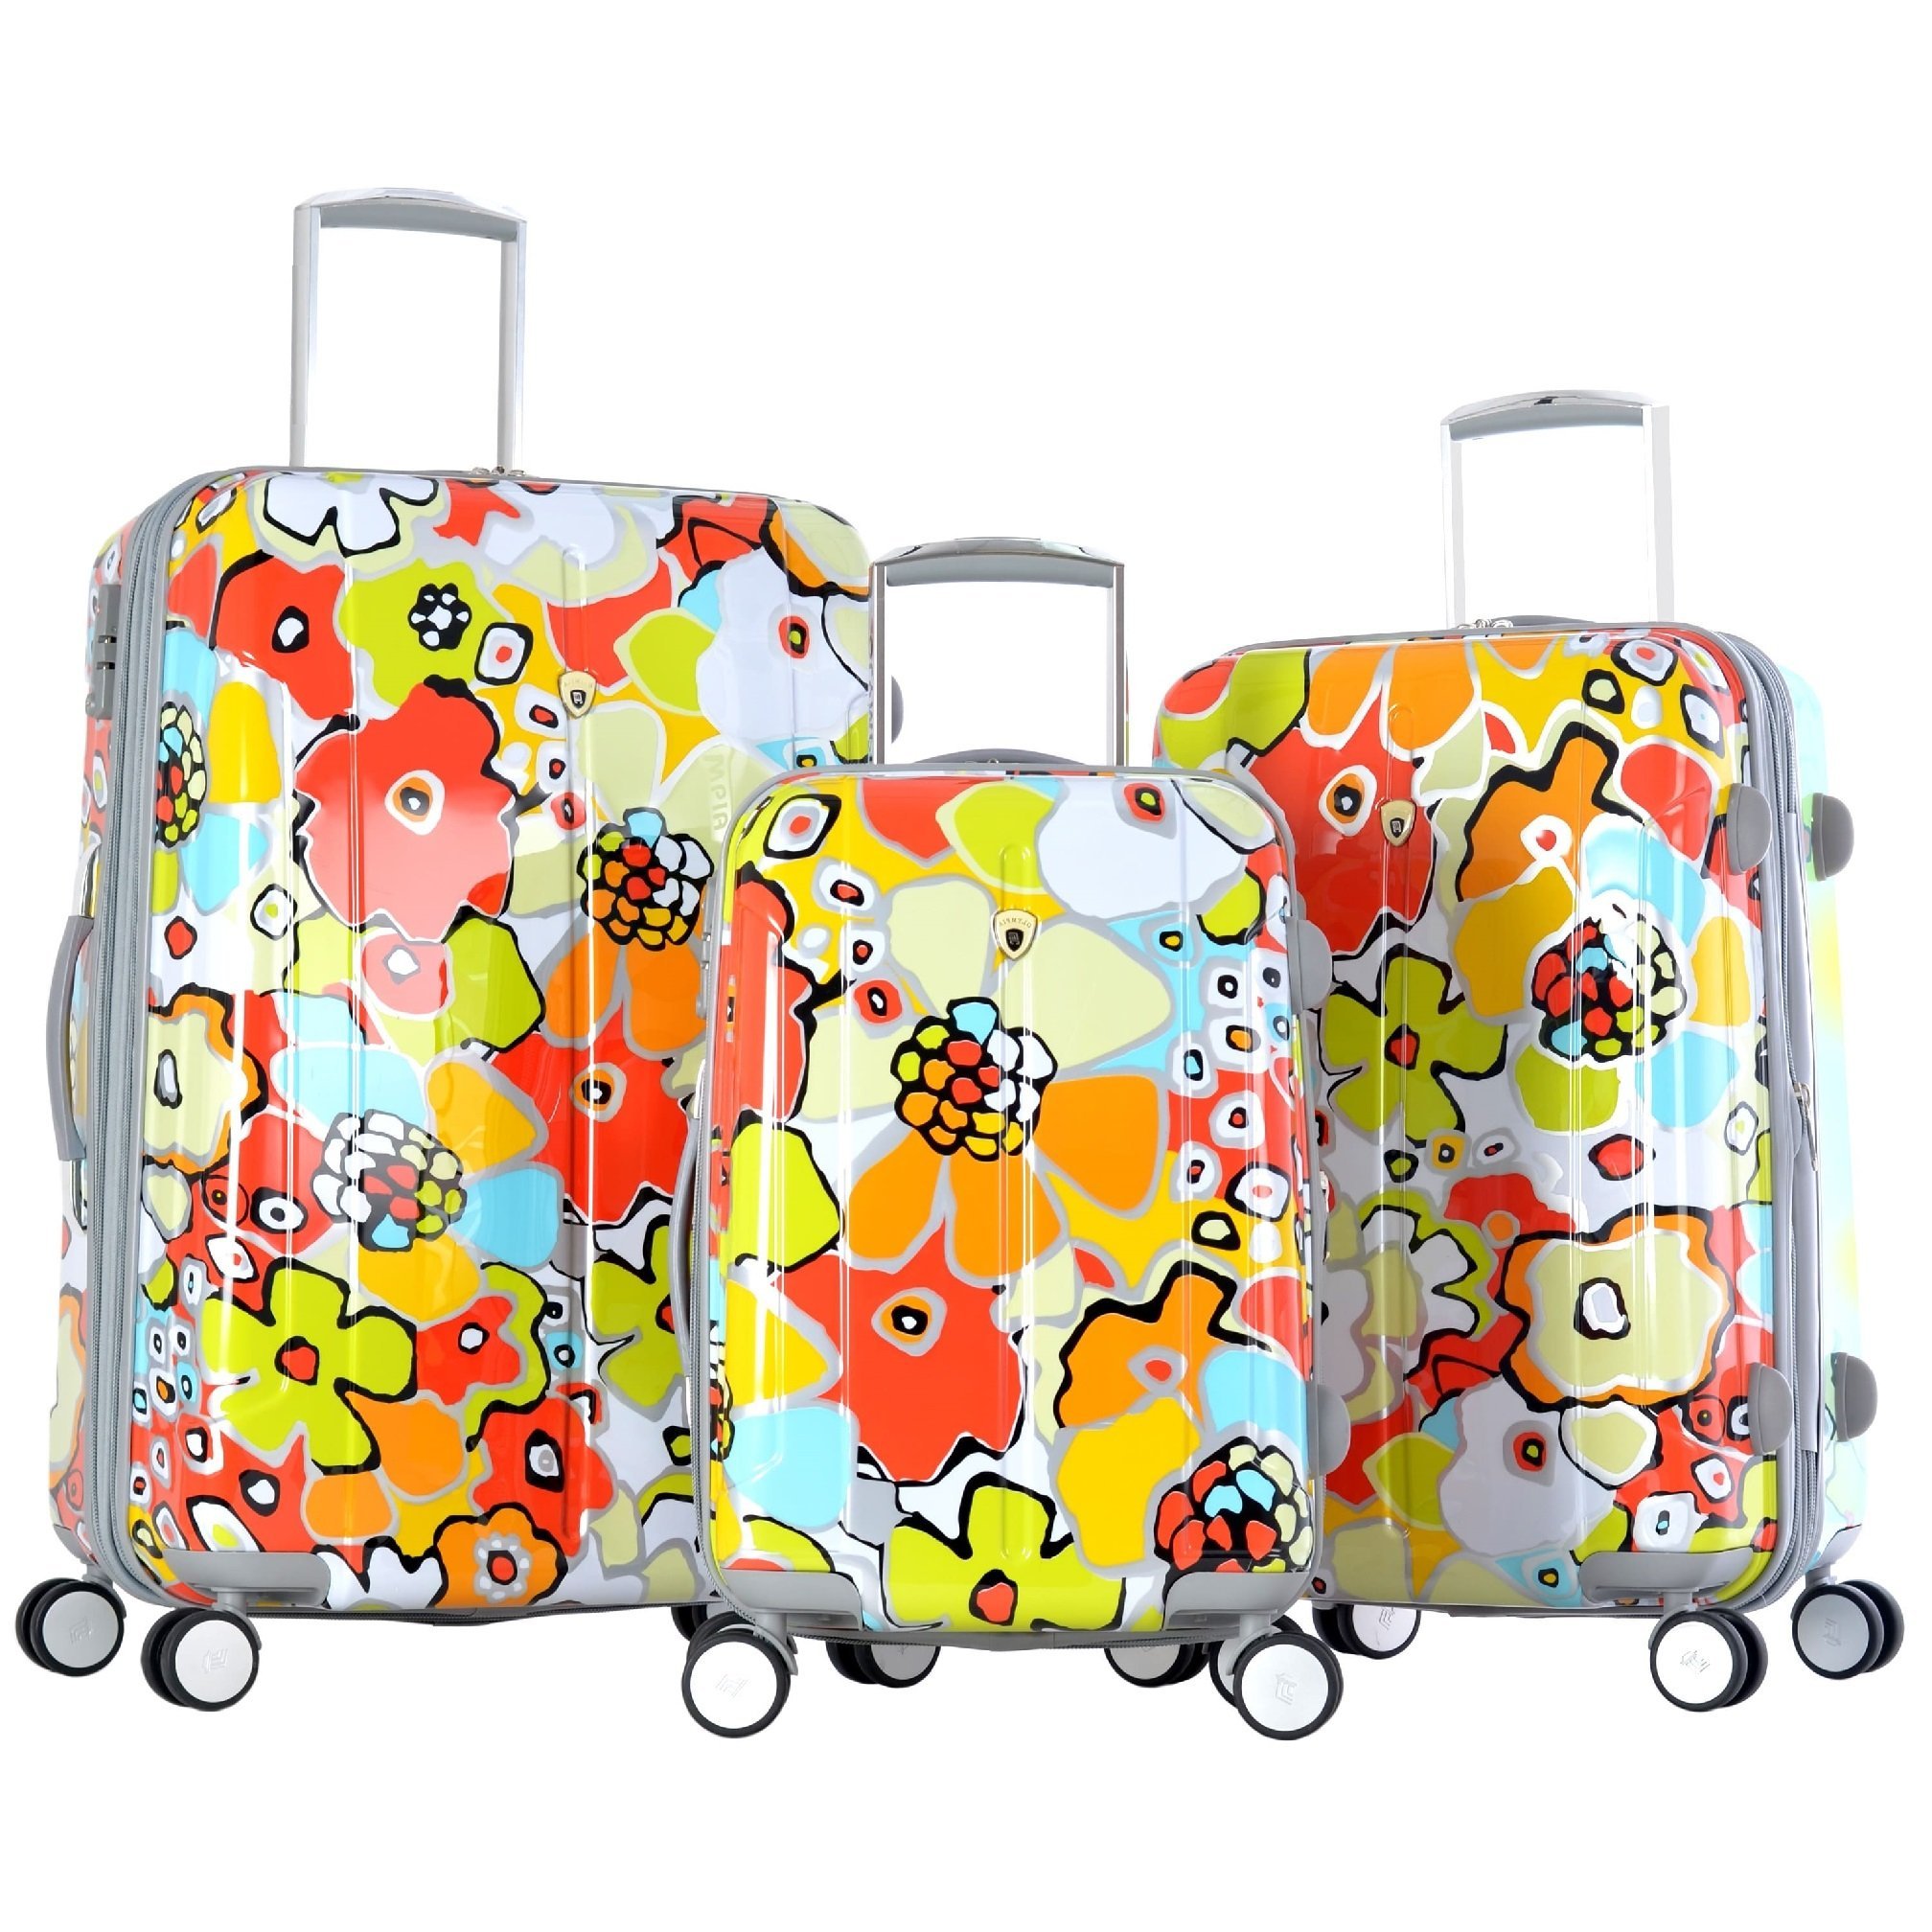 3 Piece Bright Tropical Flowers Pattern Rolling Lightweight Expandable Carry On Luggage Set, Vibrant Garden Floral Design, Hardside, Fashionable, Multi Compartment, Hard Travel Suitcases, Multicolor